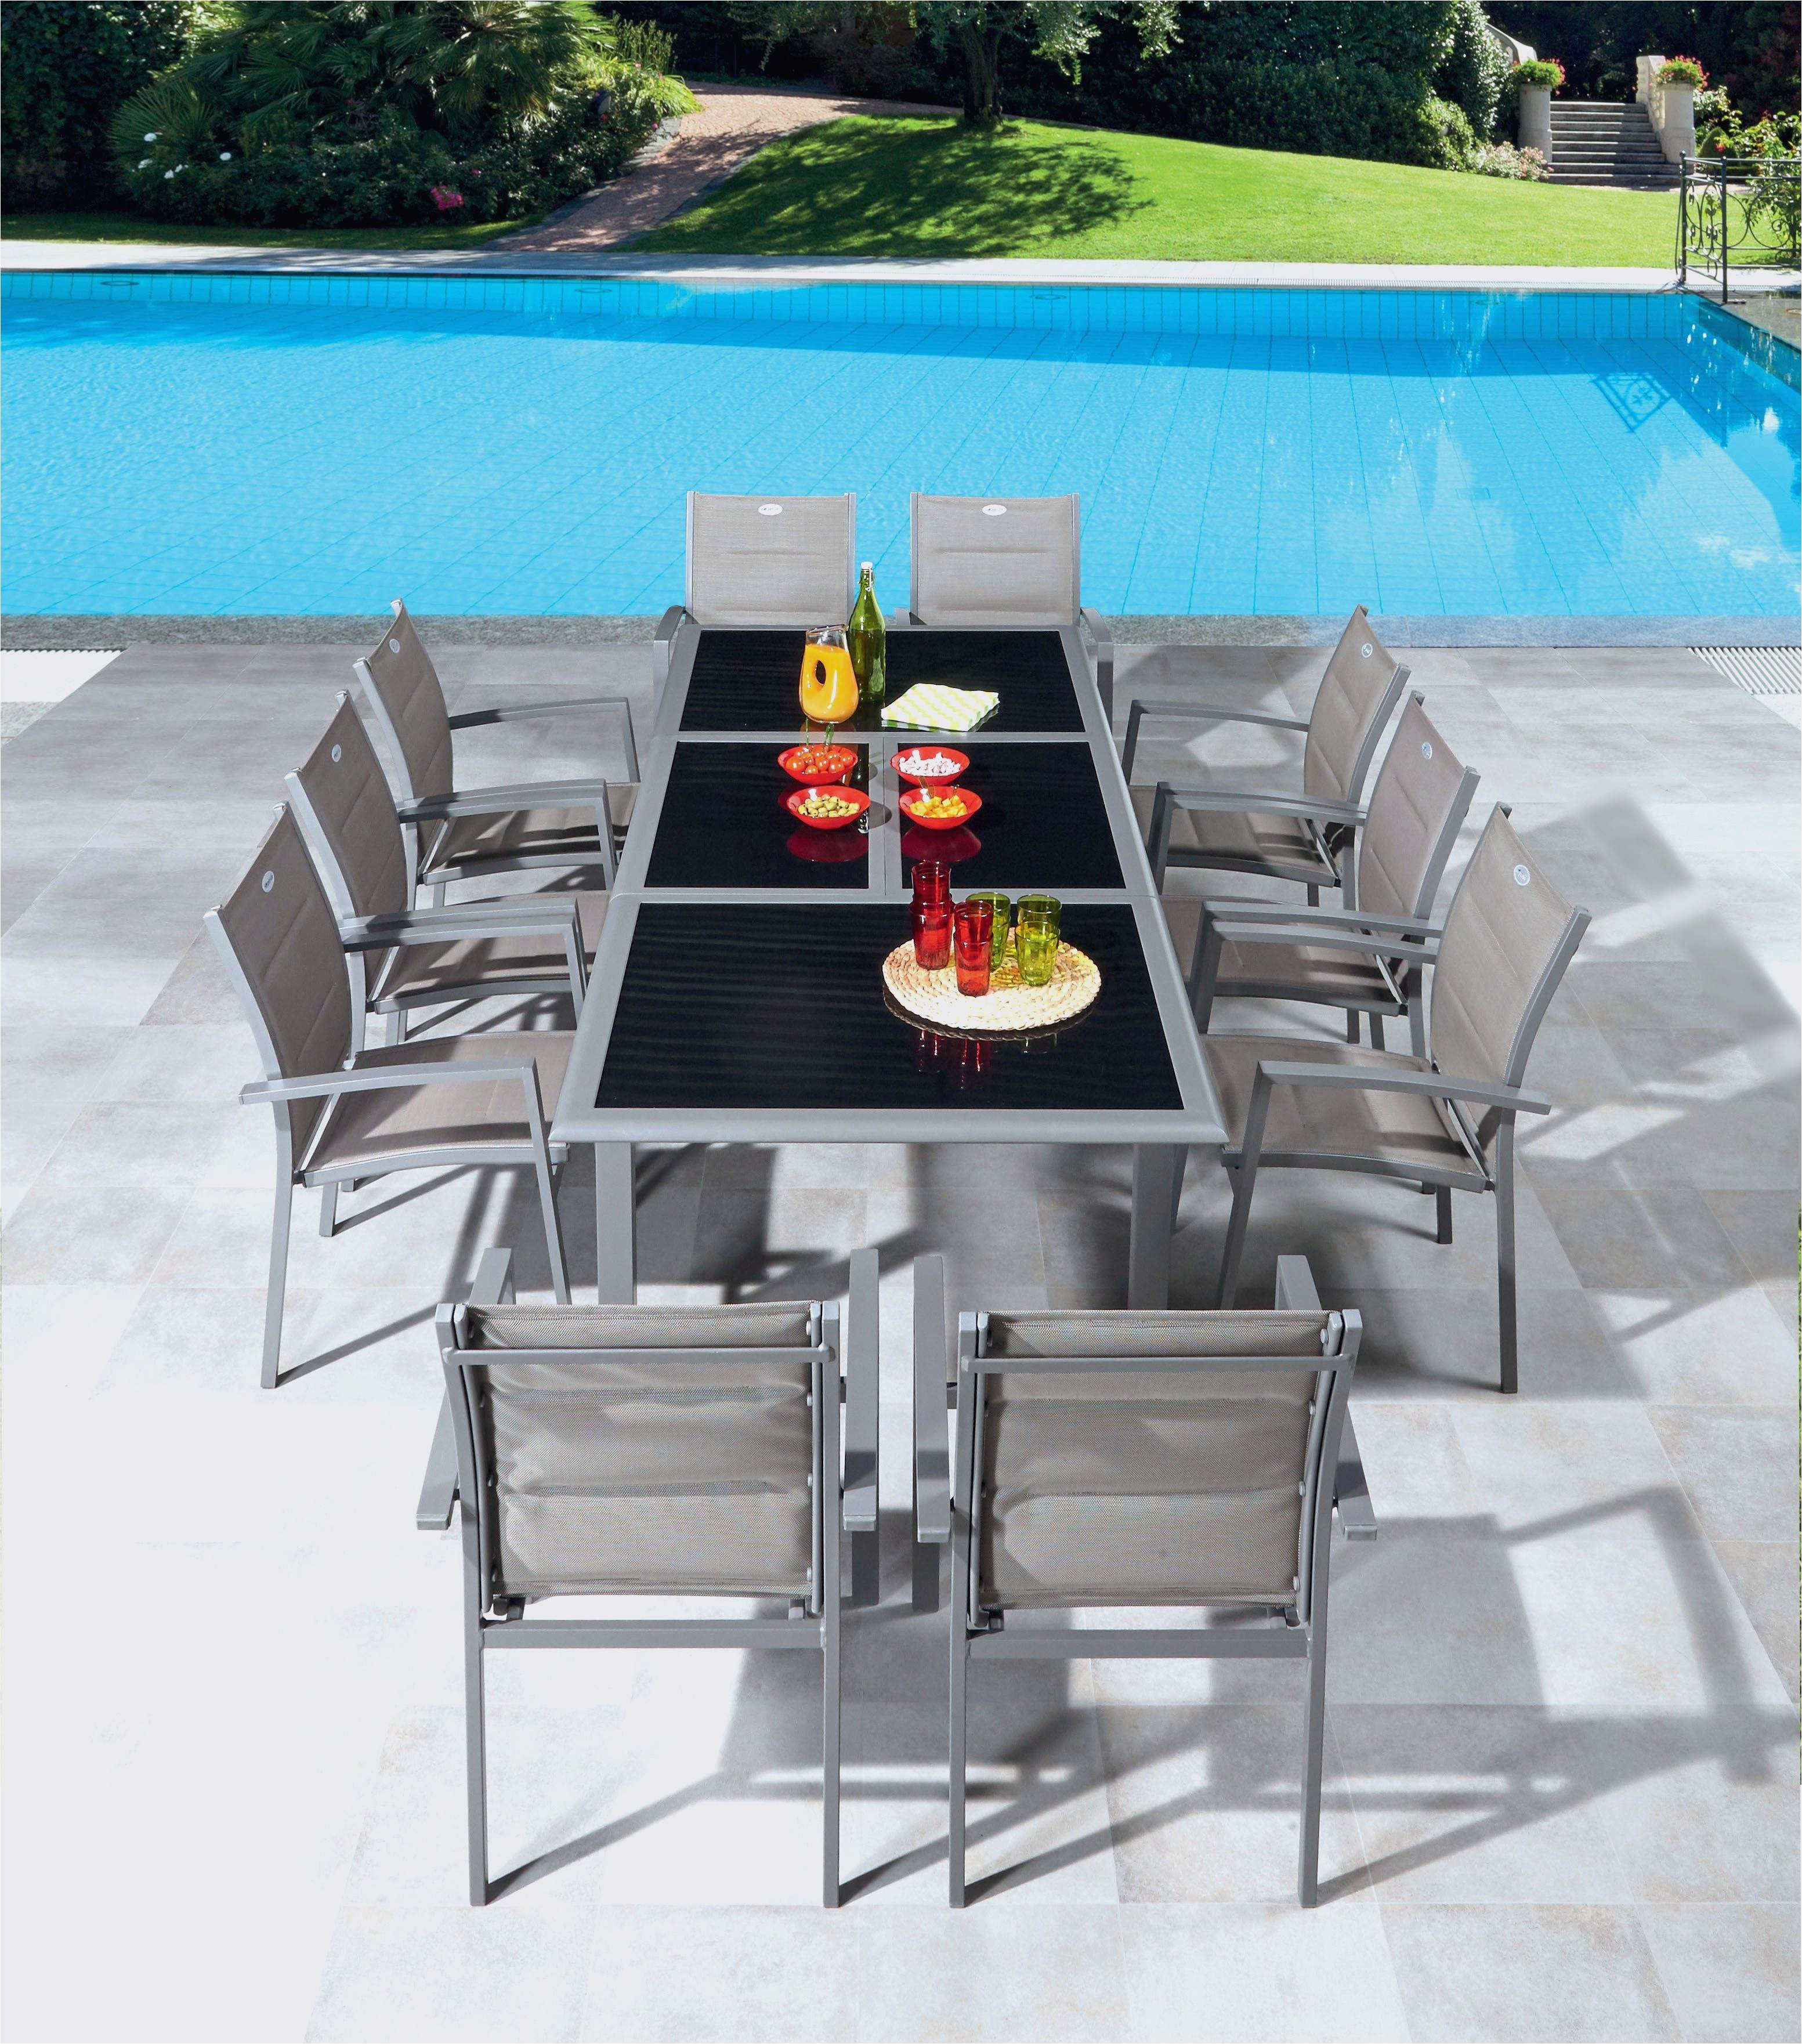 Chaises Jardin Leclerc Luxe Image Table Jardin Leclerc Magnifique Leclerc Table De Jardin Pour Parfait